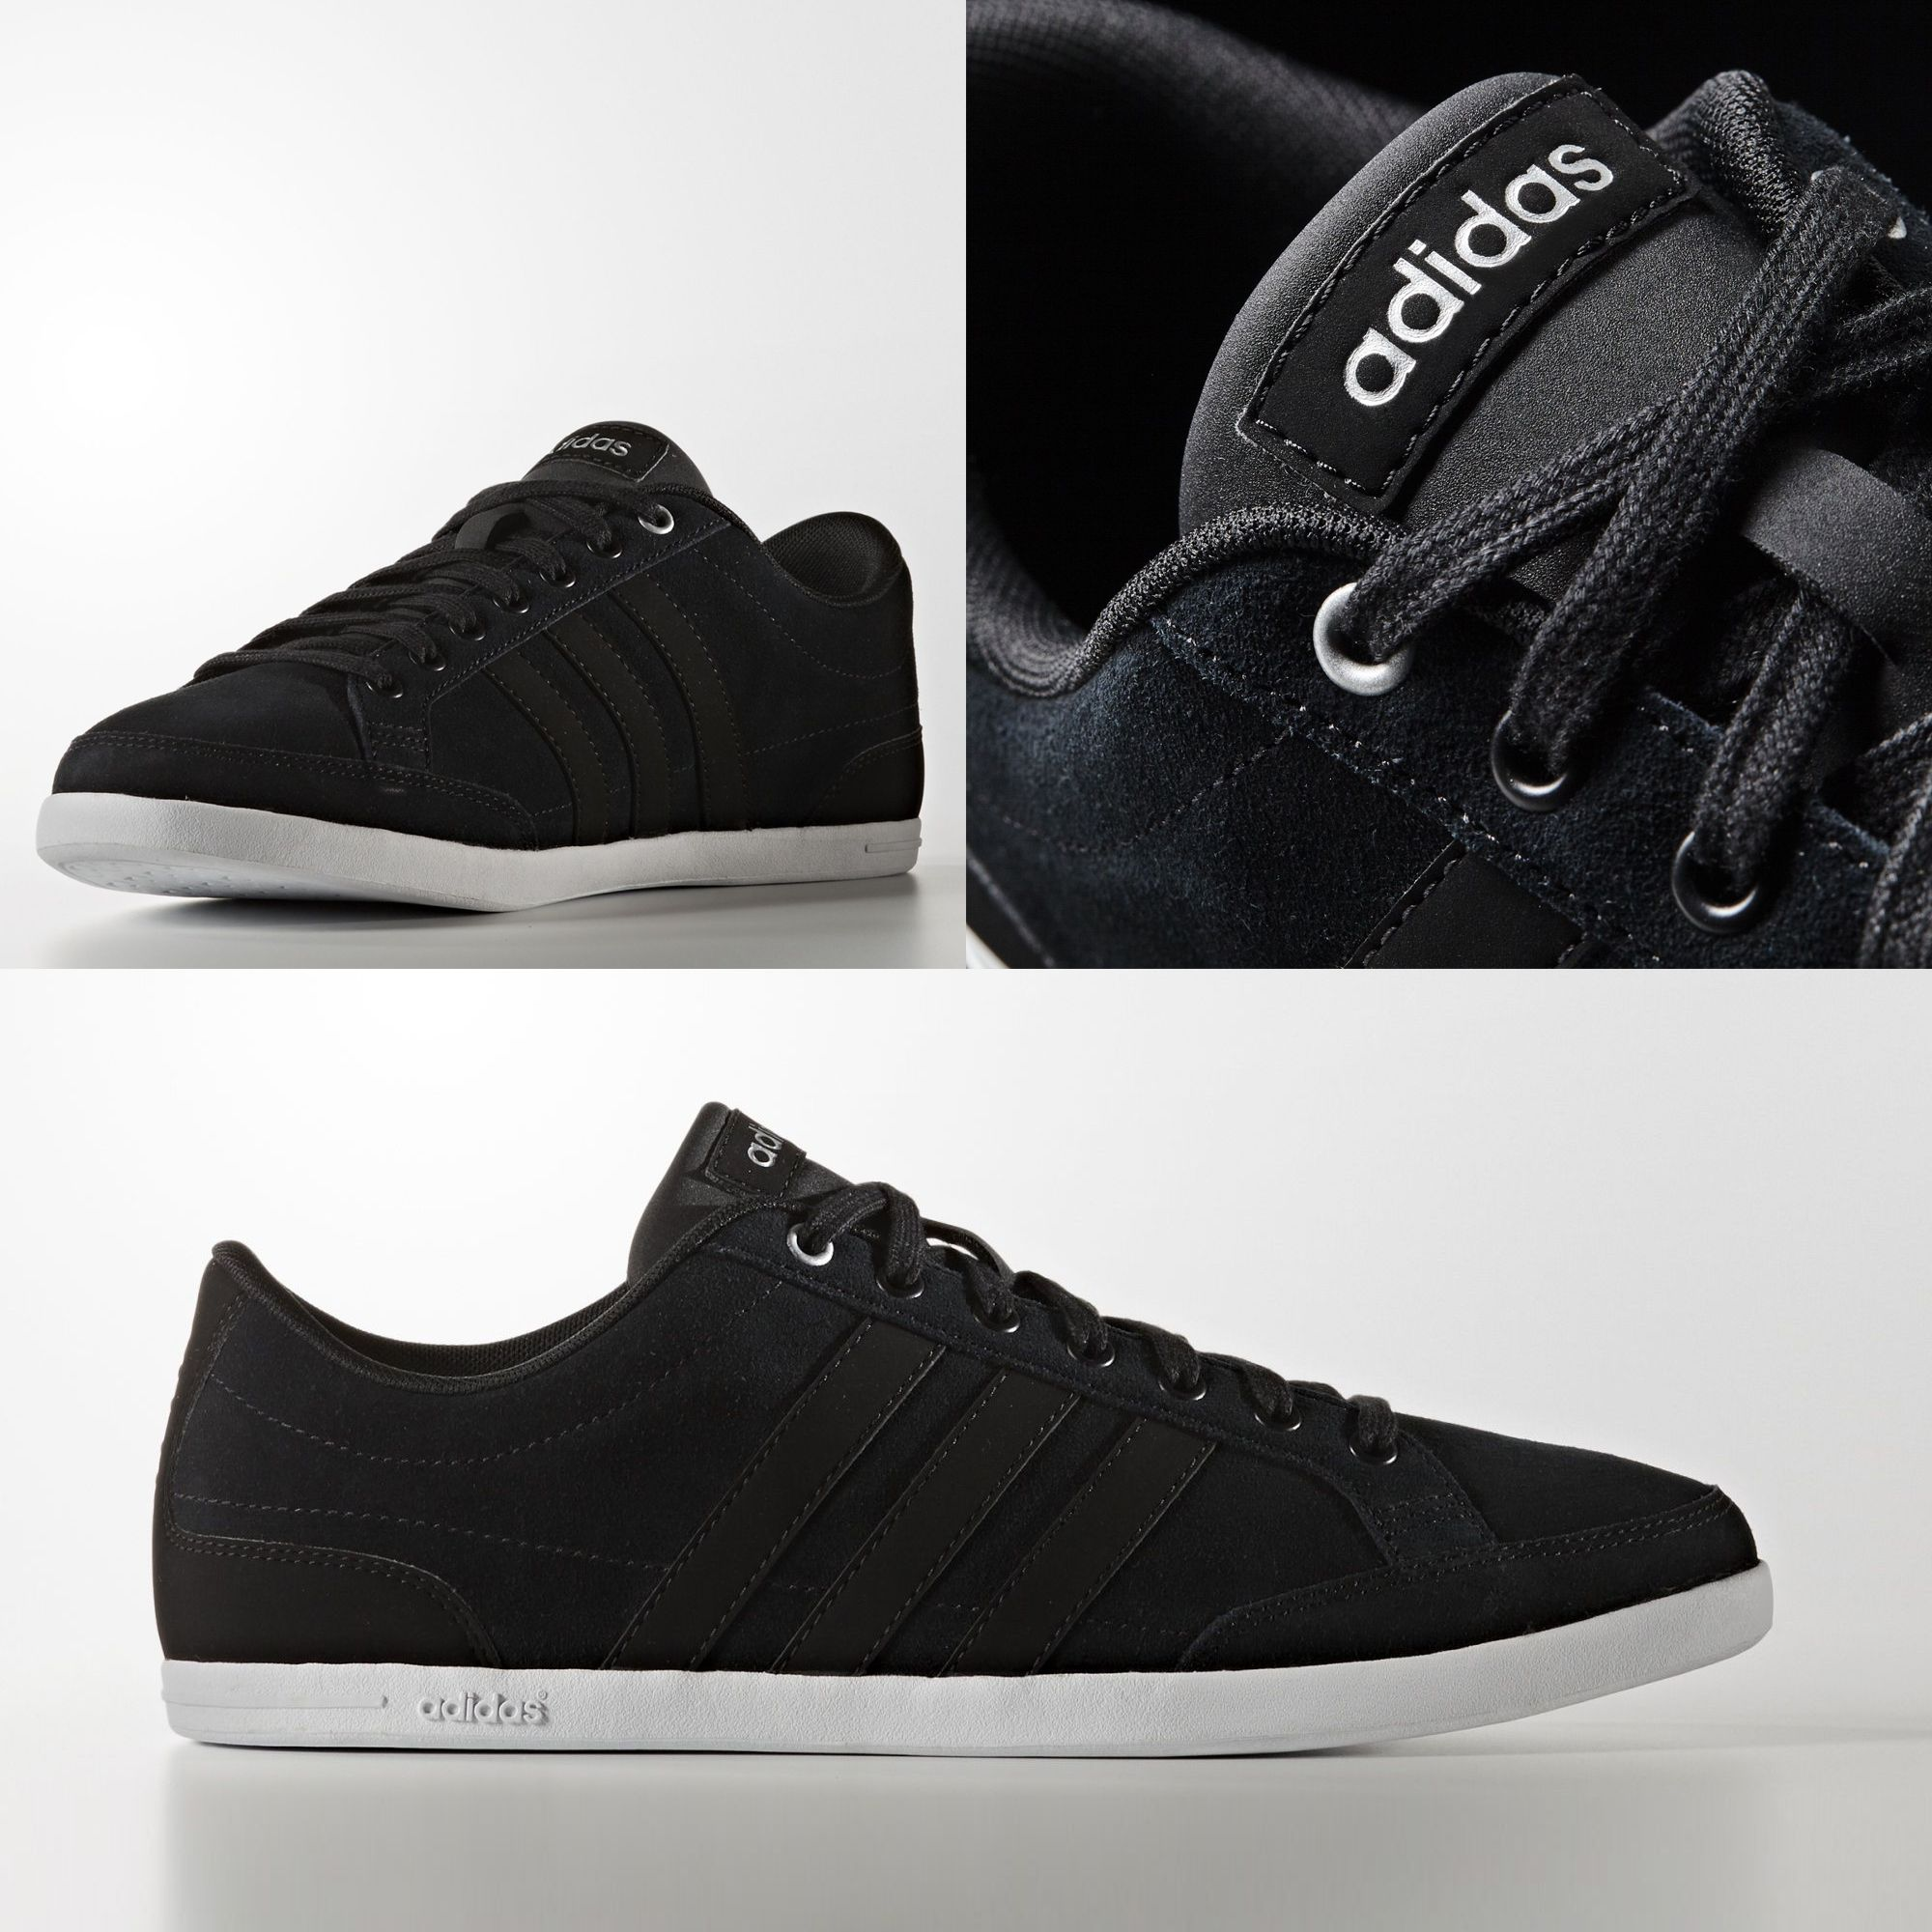 http://www.adidas.no/caflaire-shoes/B74609.